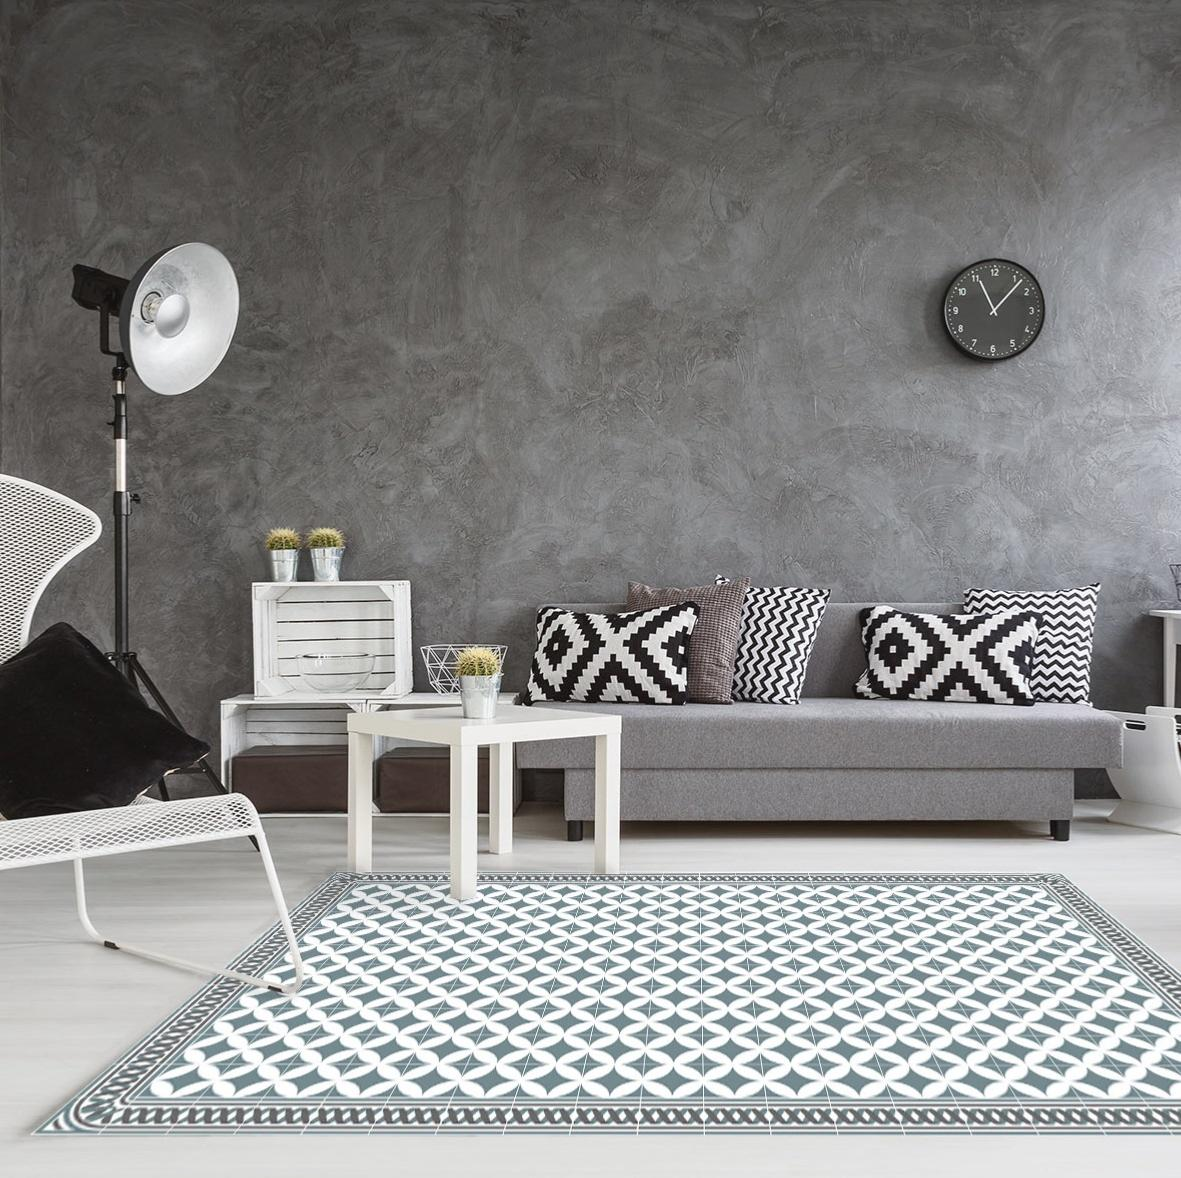 tapis vinyle carreaux de ciment louison bleu gris. Black Bedroom Furniture Sets. Home Design Ideas